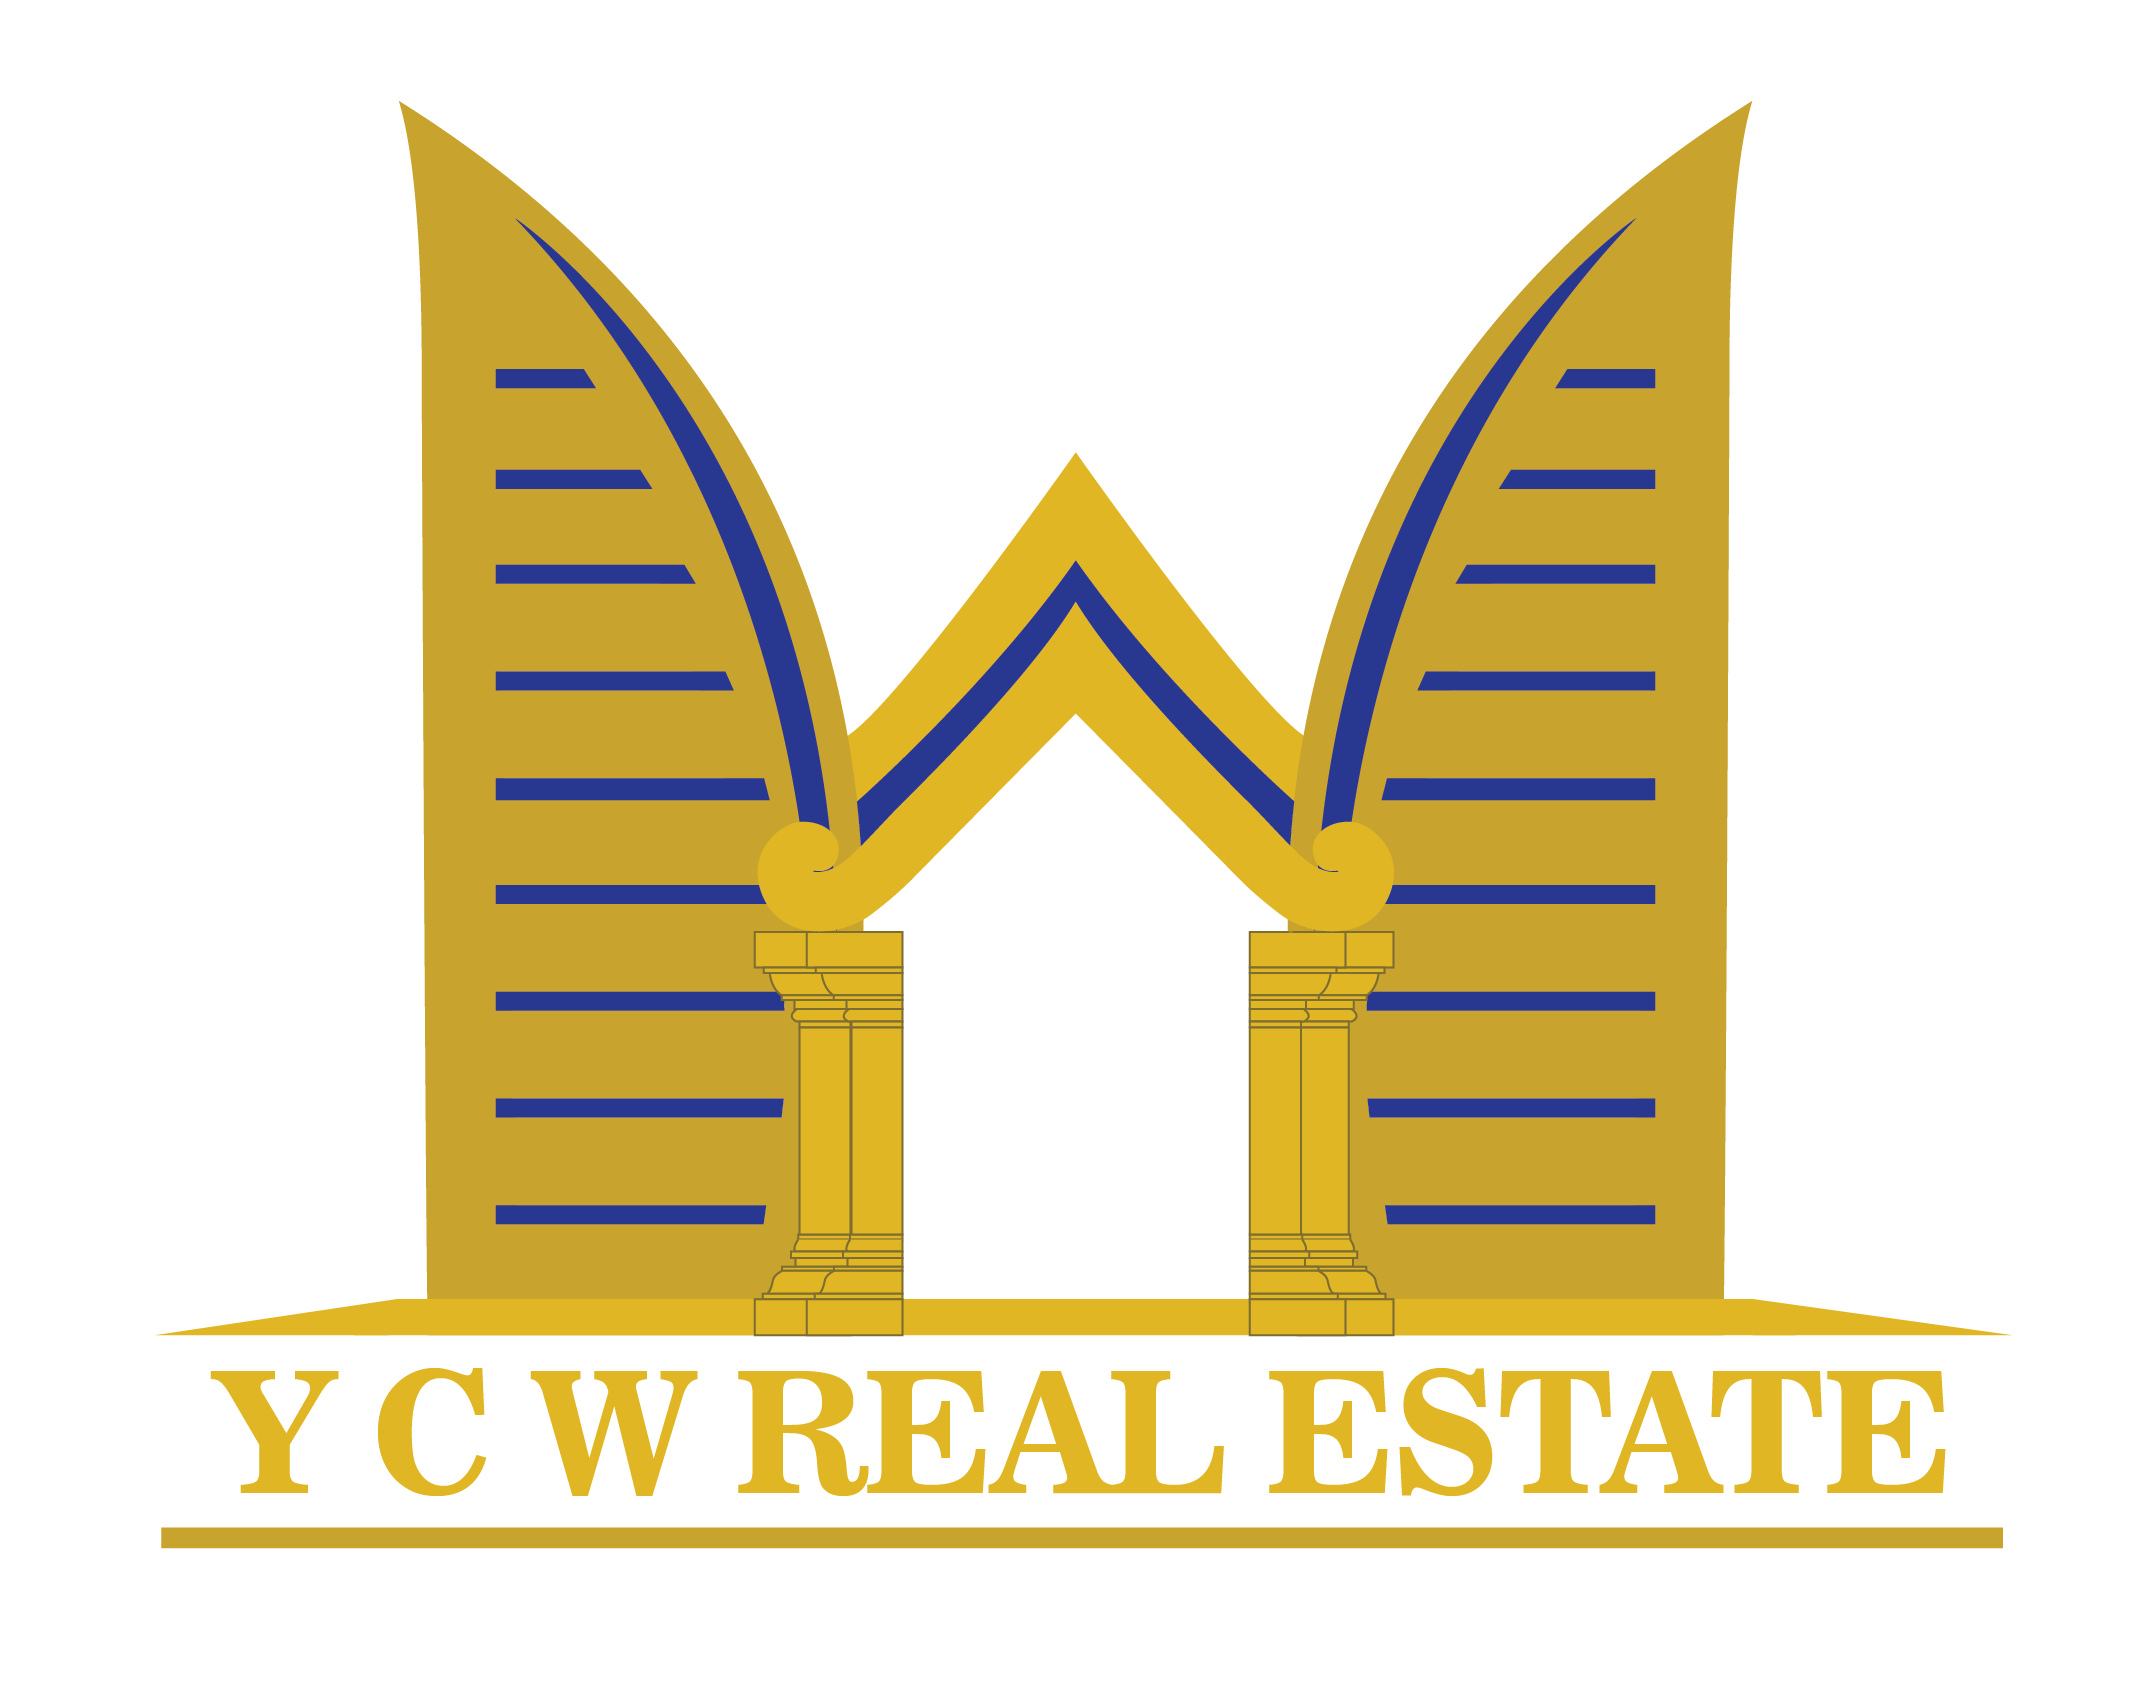 You can win real estate